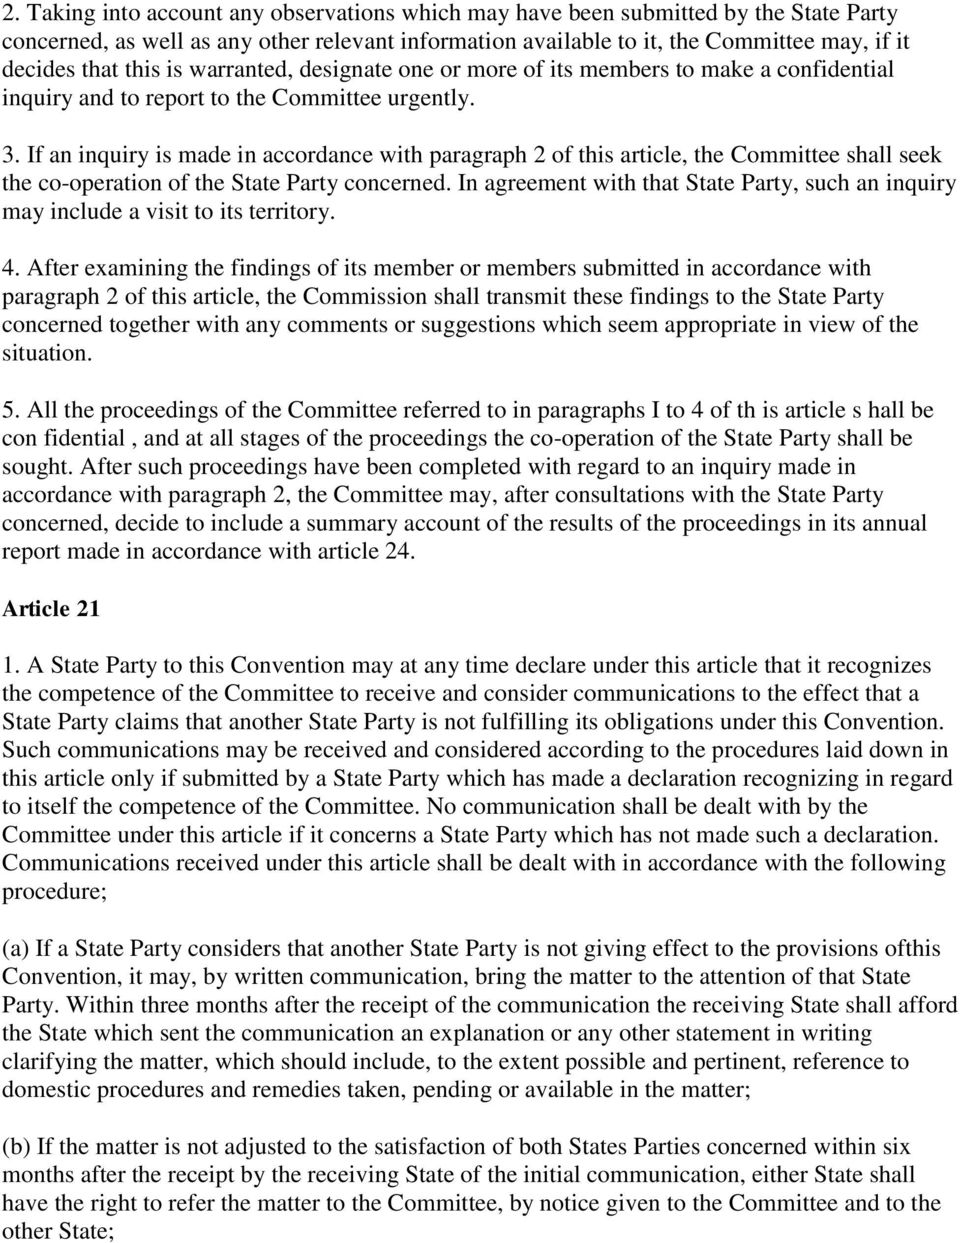 If an inquiry is made in accordance with paragraph 2 of this article, the Committee shall seek the co-operation of the State Party concerned.